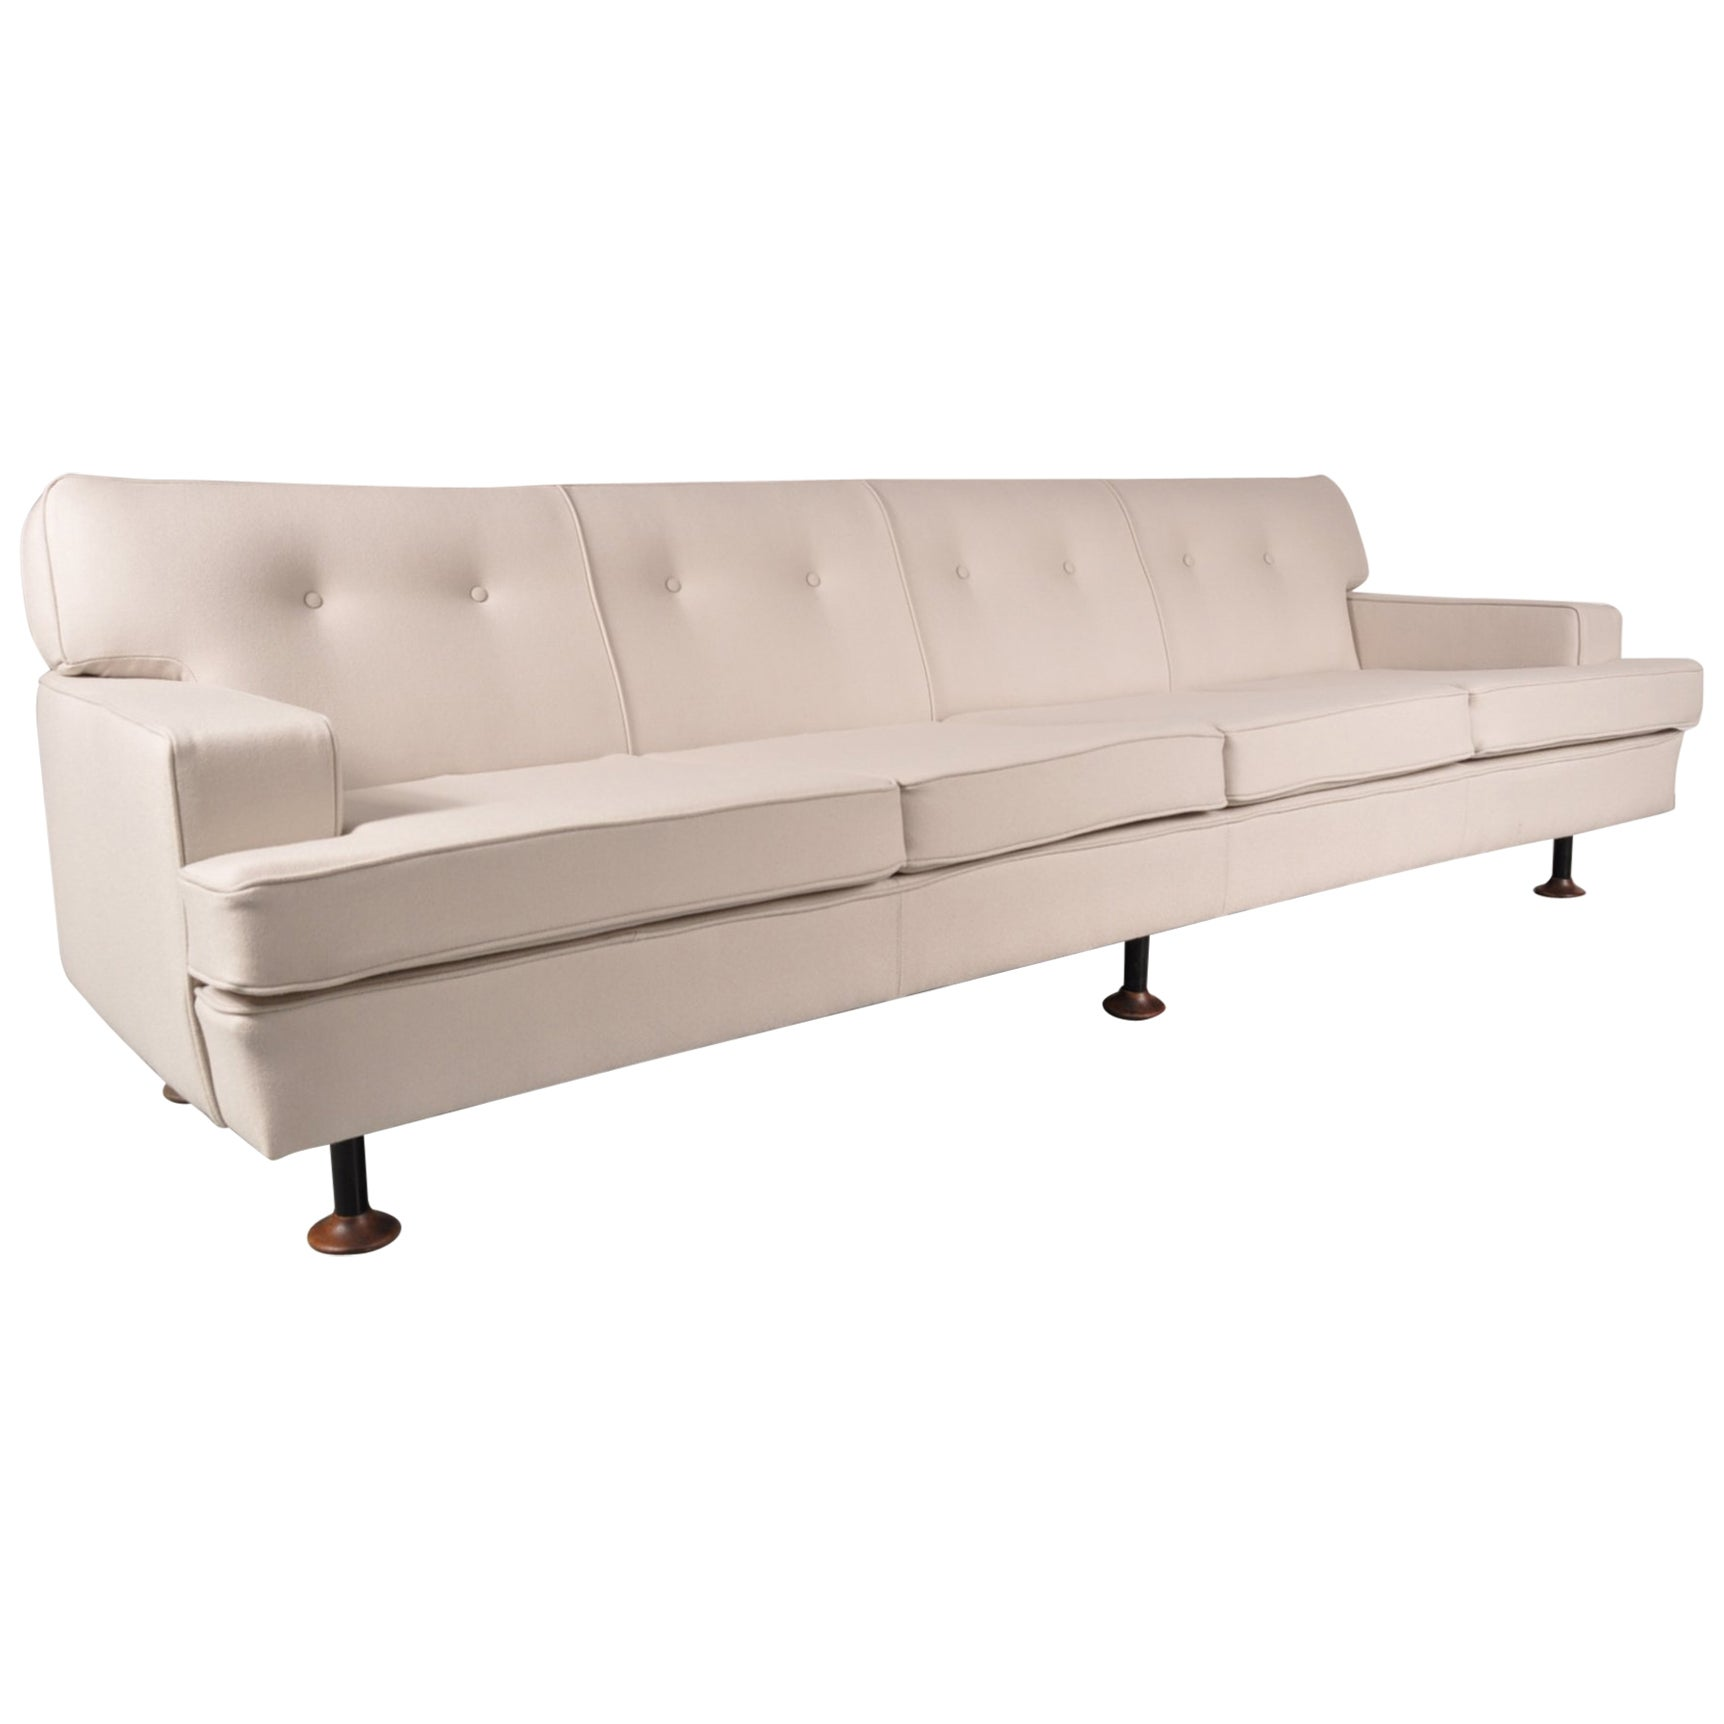 Square Sofa Four Seat